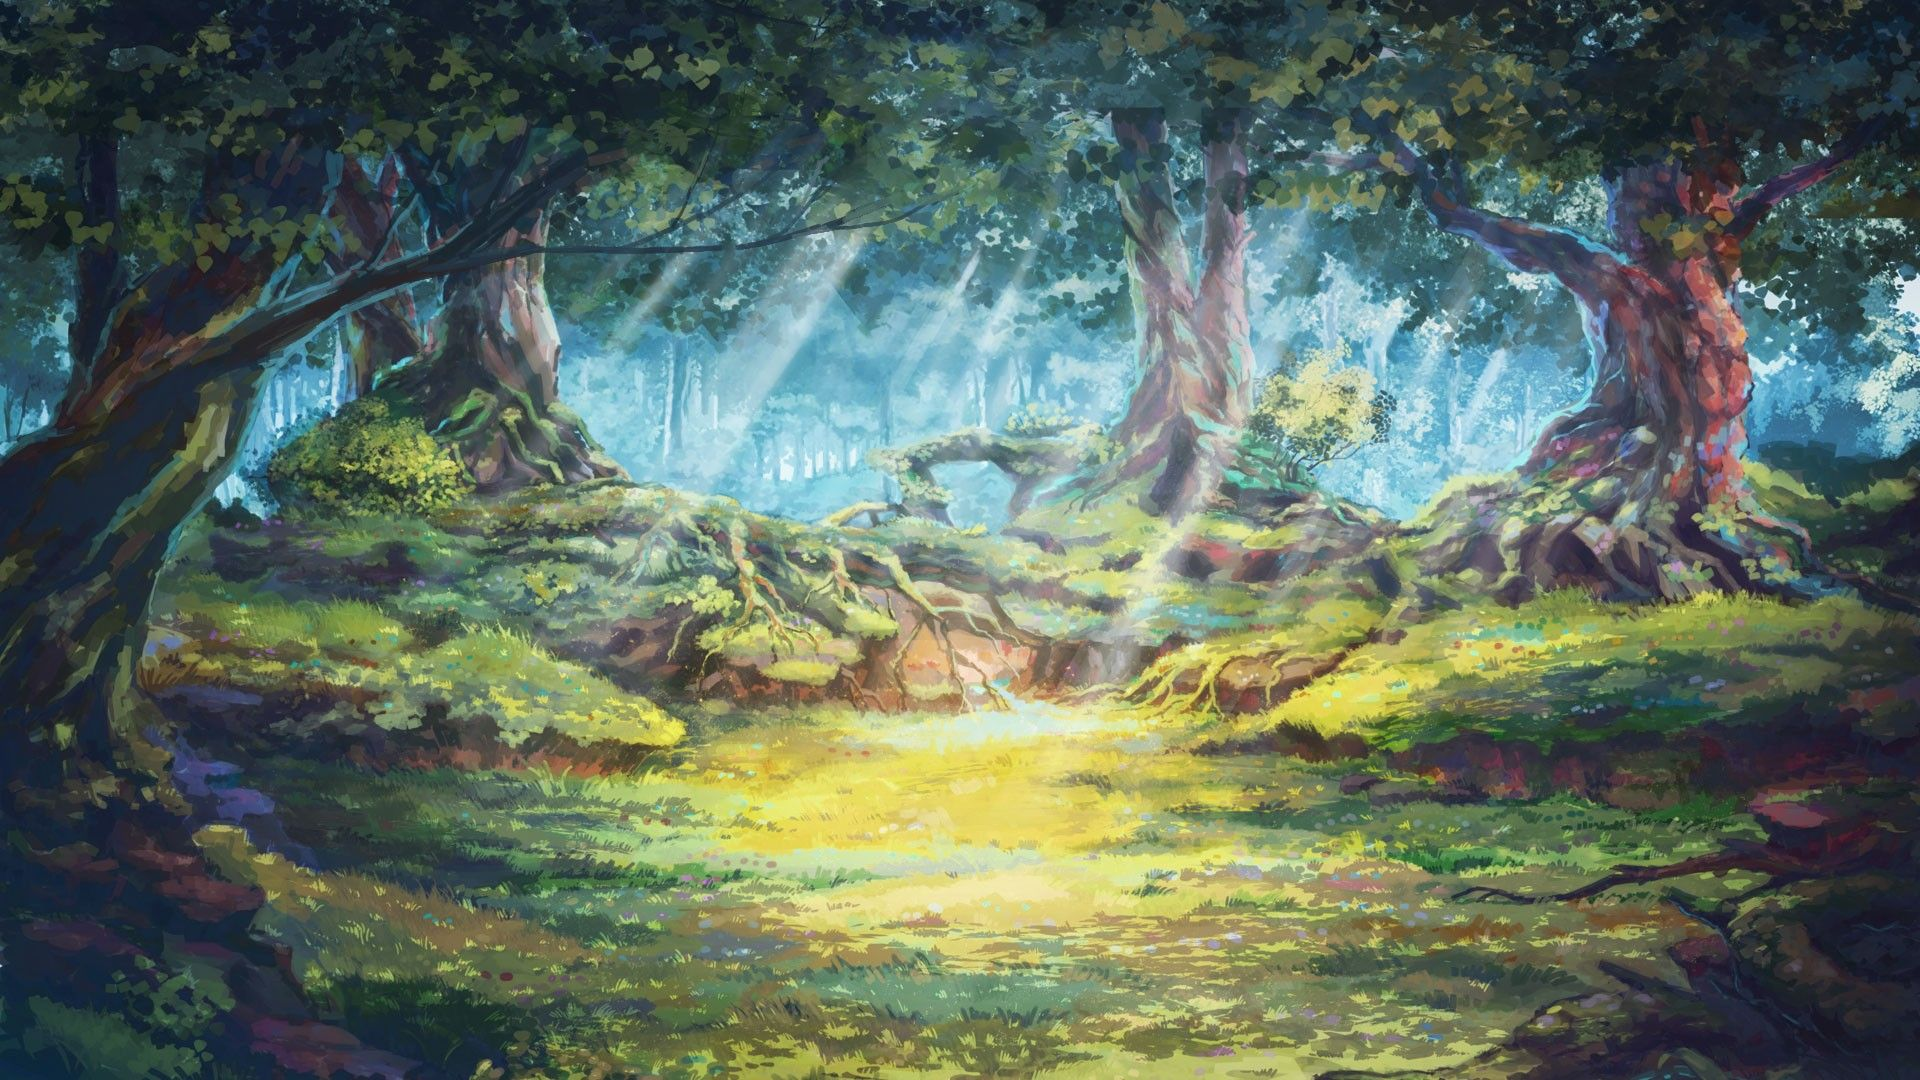 Everlasting Summer Trees Forest Sun Rays Sunlight Artwork Forest Clearing Roots Wallpaper Nature Illustration Forest Art Forest Illustration